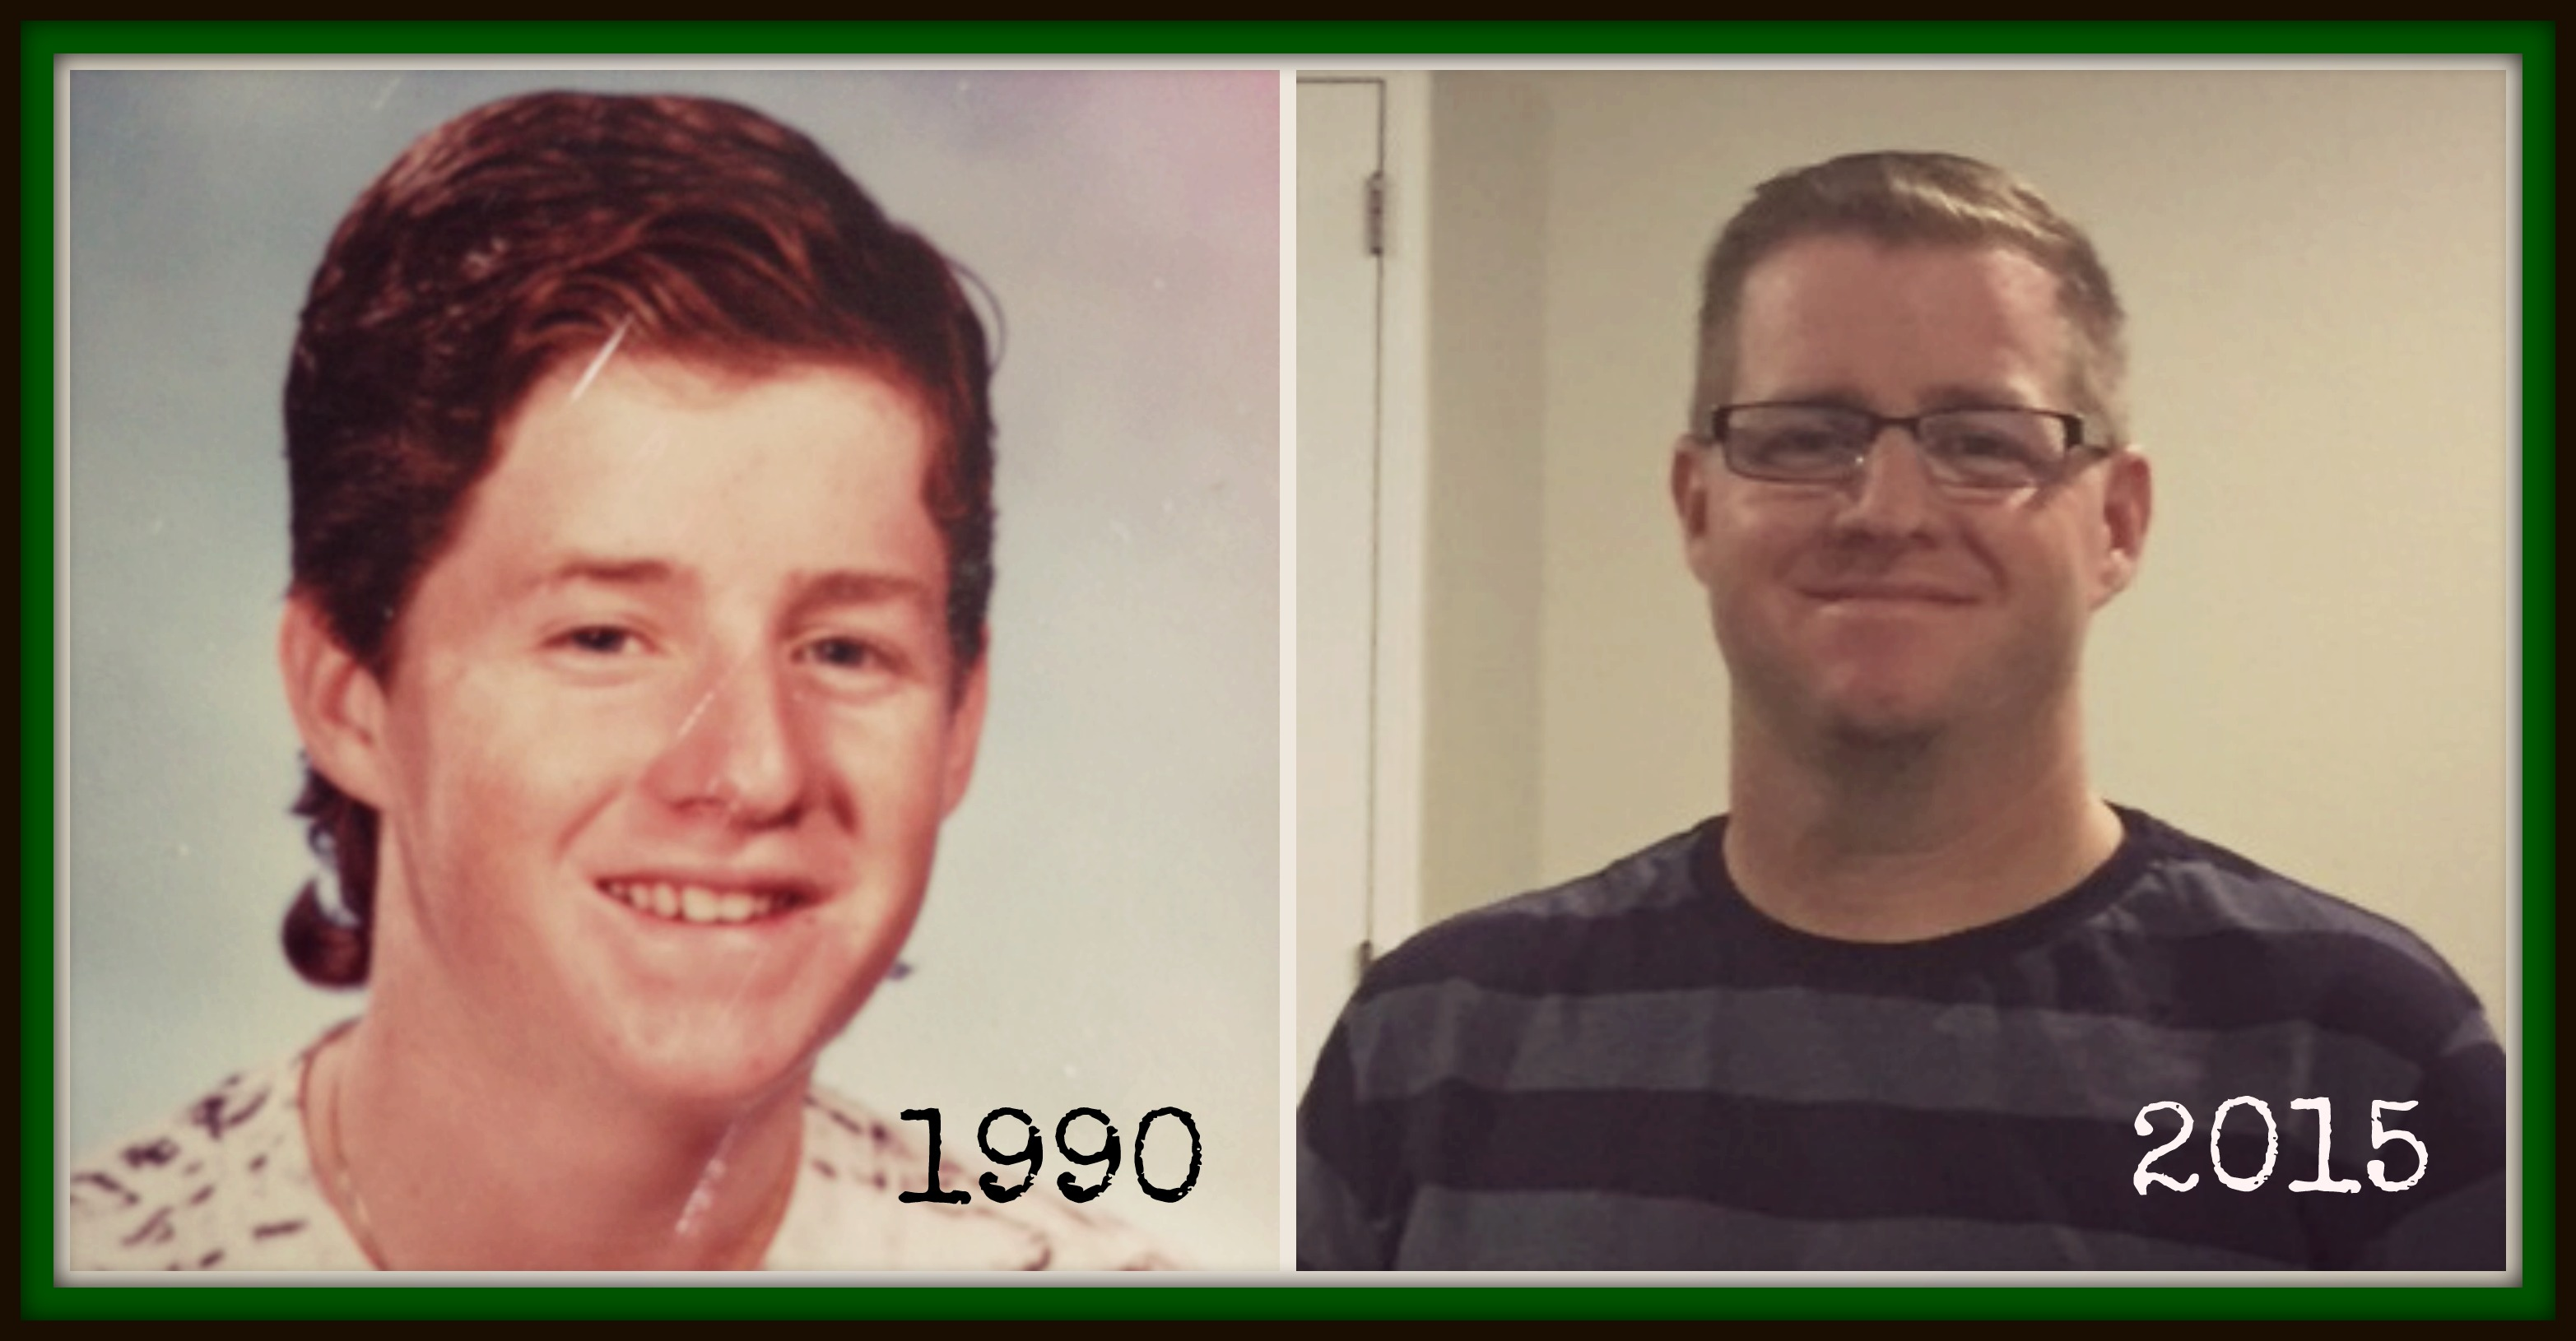 Chris Tanner then and now